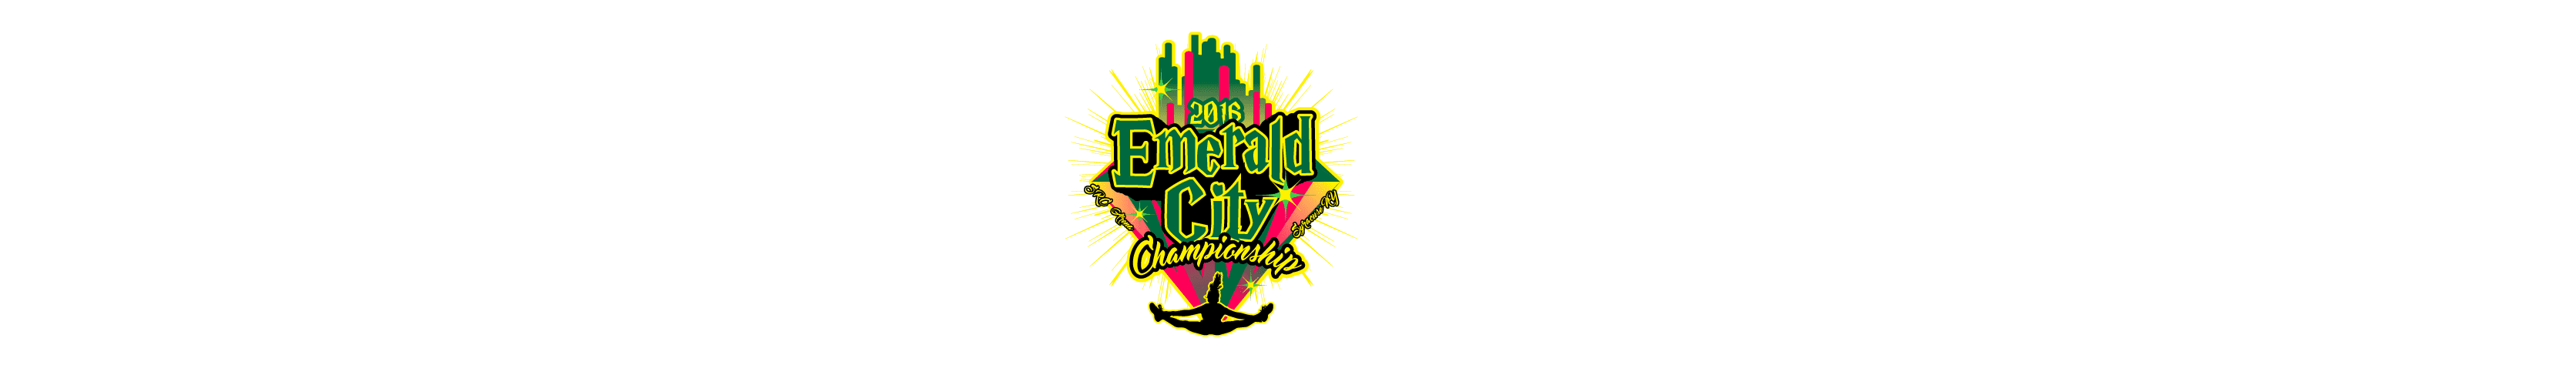 VECTOR LOGO DESIGN FOR PRINT EMERALD CITY CHAMPIONSHIP CHEER AND DANCE EVENT